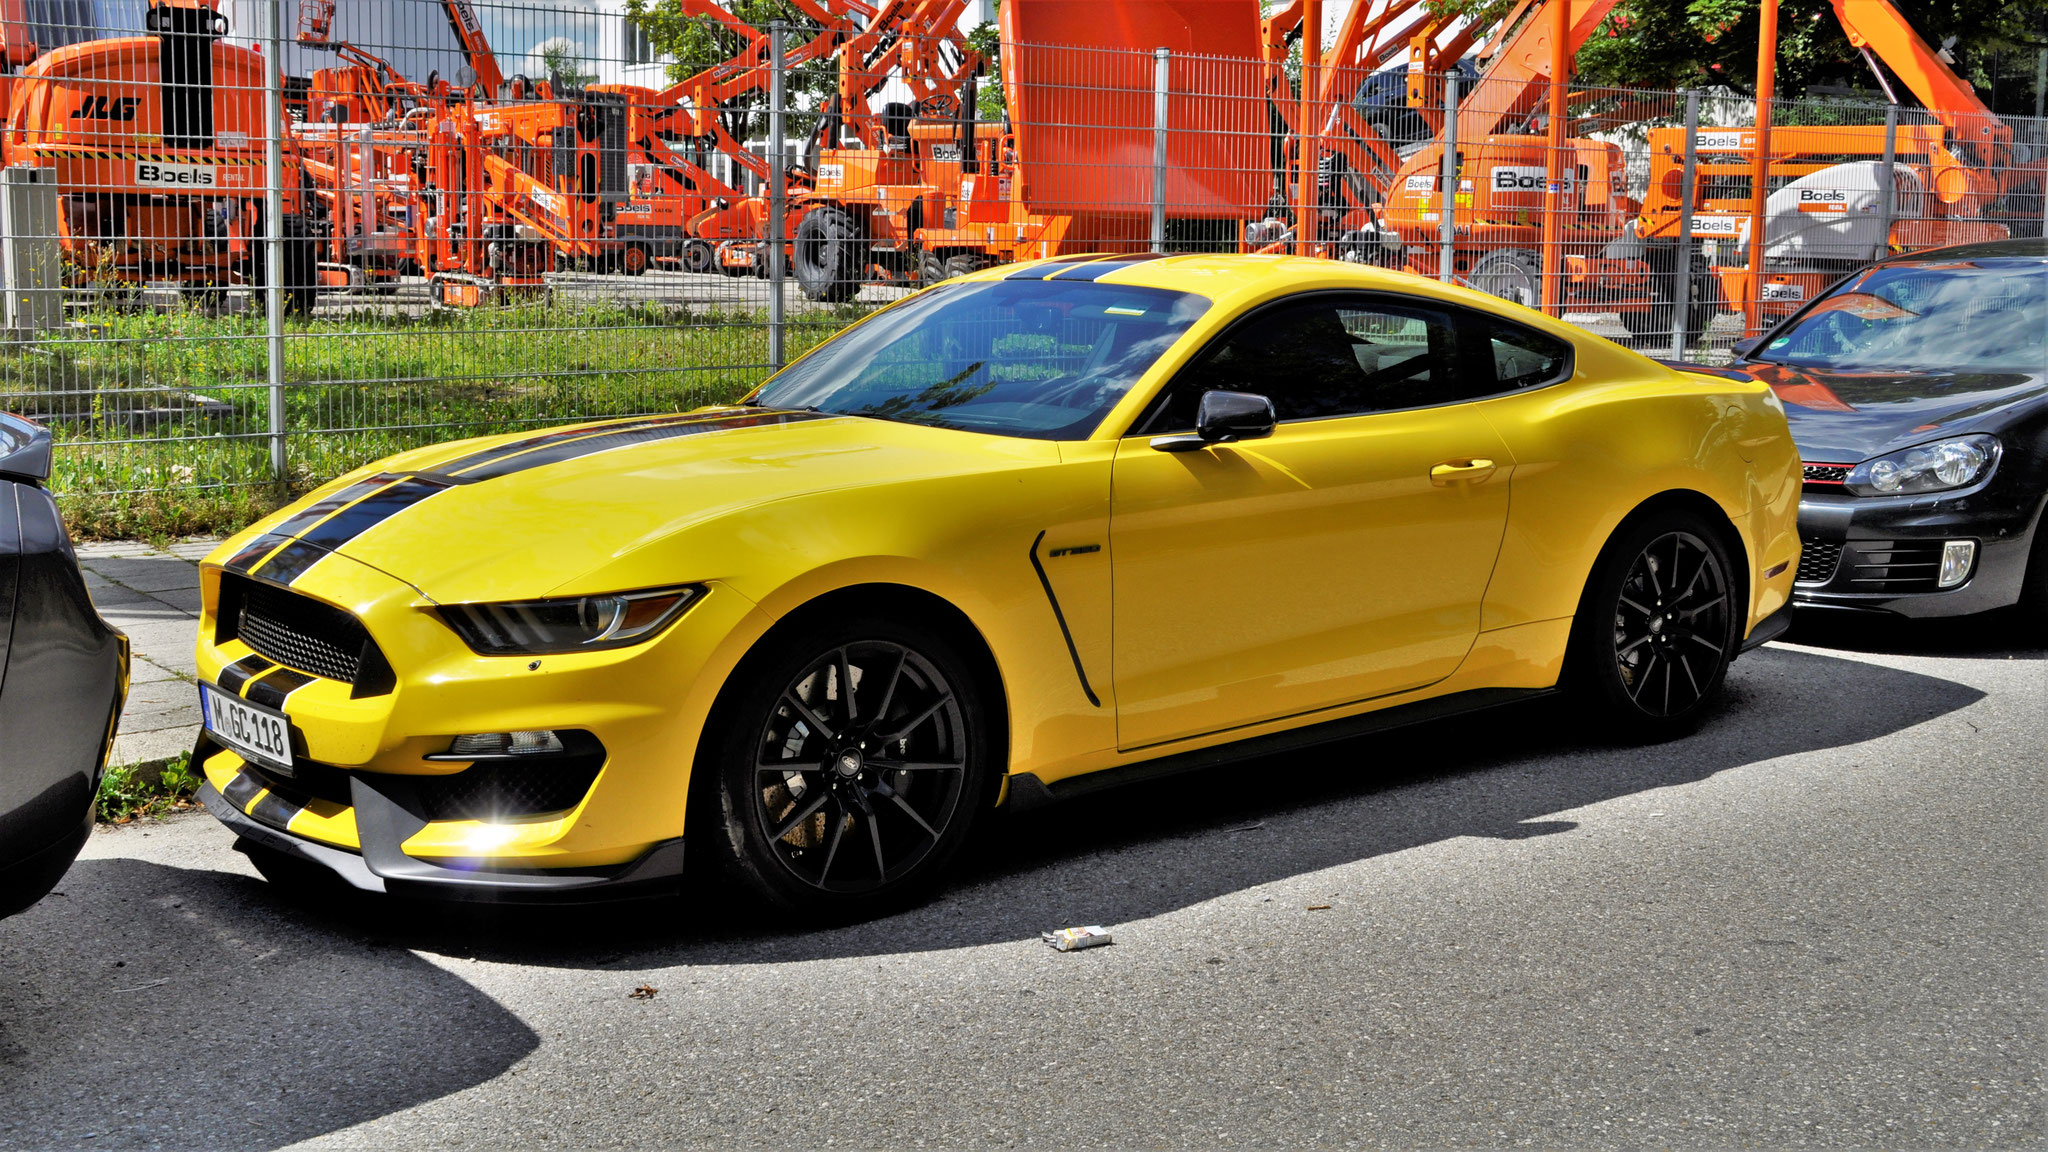 Ford Mustang GT - M-GC-118